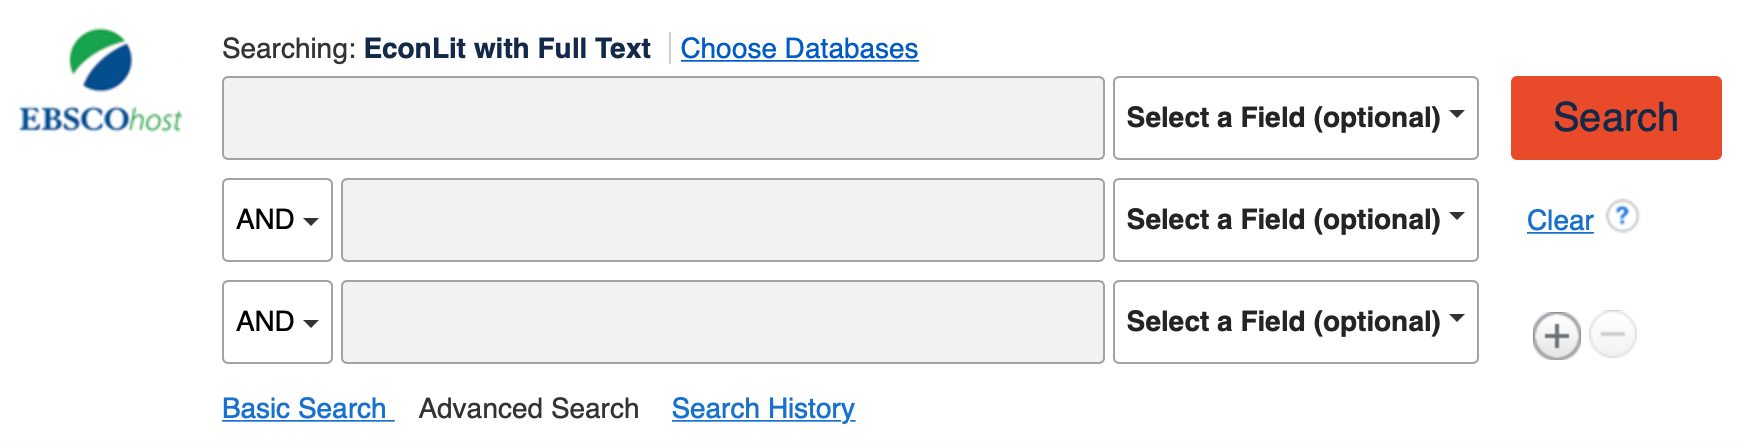 Image showing EconLit's advanced search box.